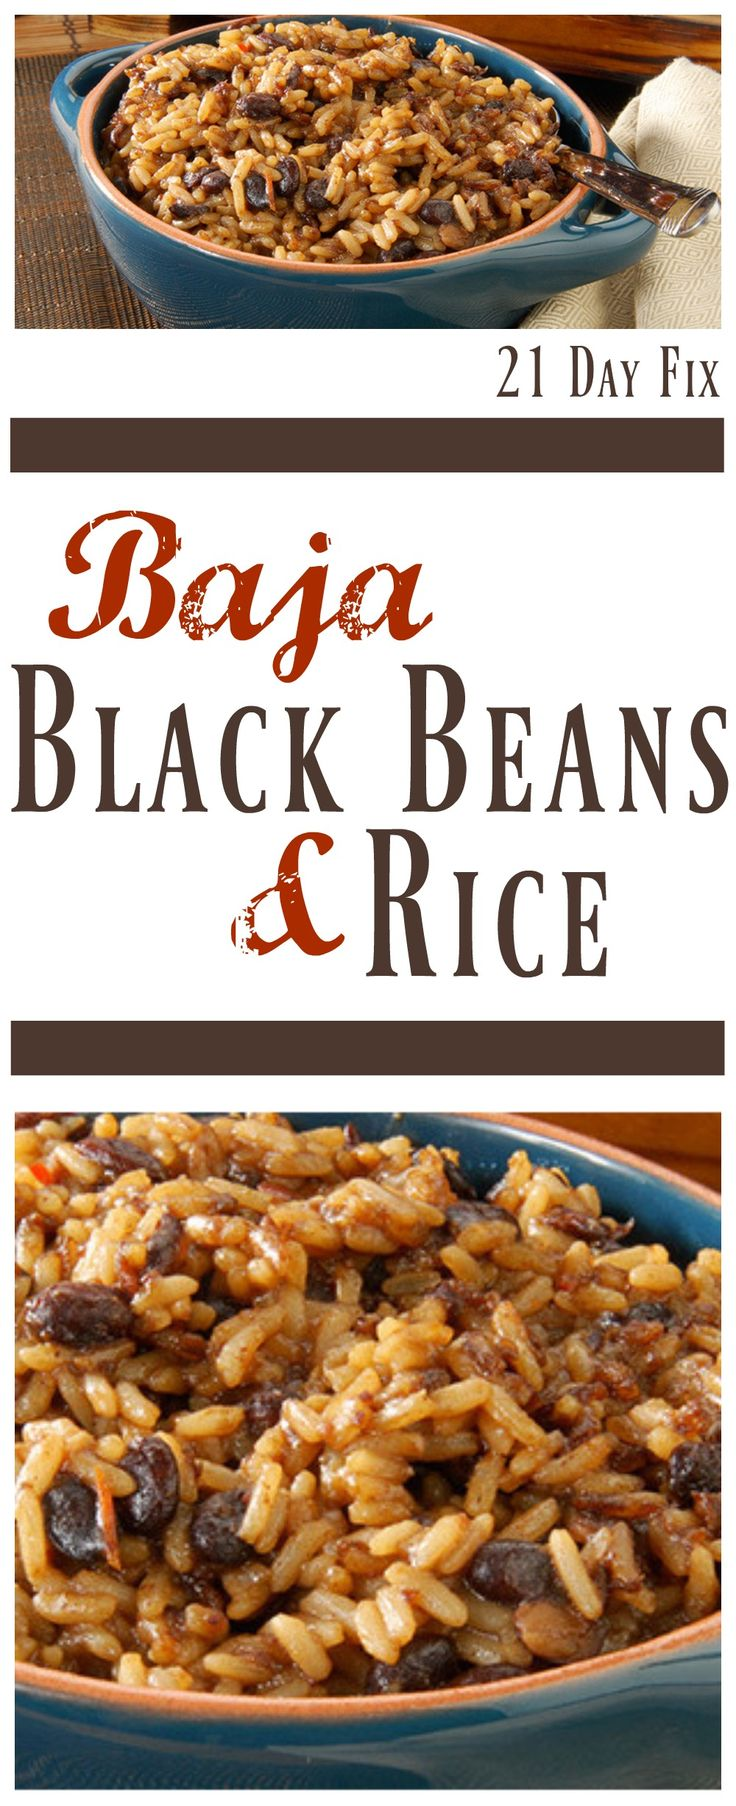 21 Day Fix Black Beans - Baja Black Beans and Rice #21dayfix #21dayfixdinnerideas #21dayfixbeans #21dayfixblackbeans #21dayfixriceandbeans #21dayfixrice #21dayfixdinner #cleaneating #cleaneatingdinnerideas #cleaneatingbeans #cleaneatingblackbeans #cleaneatingriceandbeans #cleaneatingrice #cleaneatingdinner